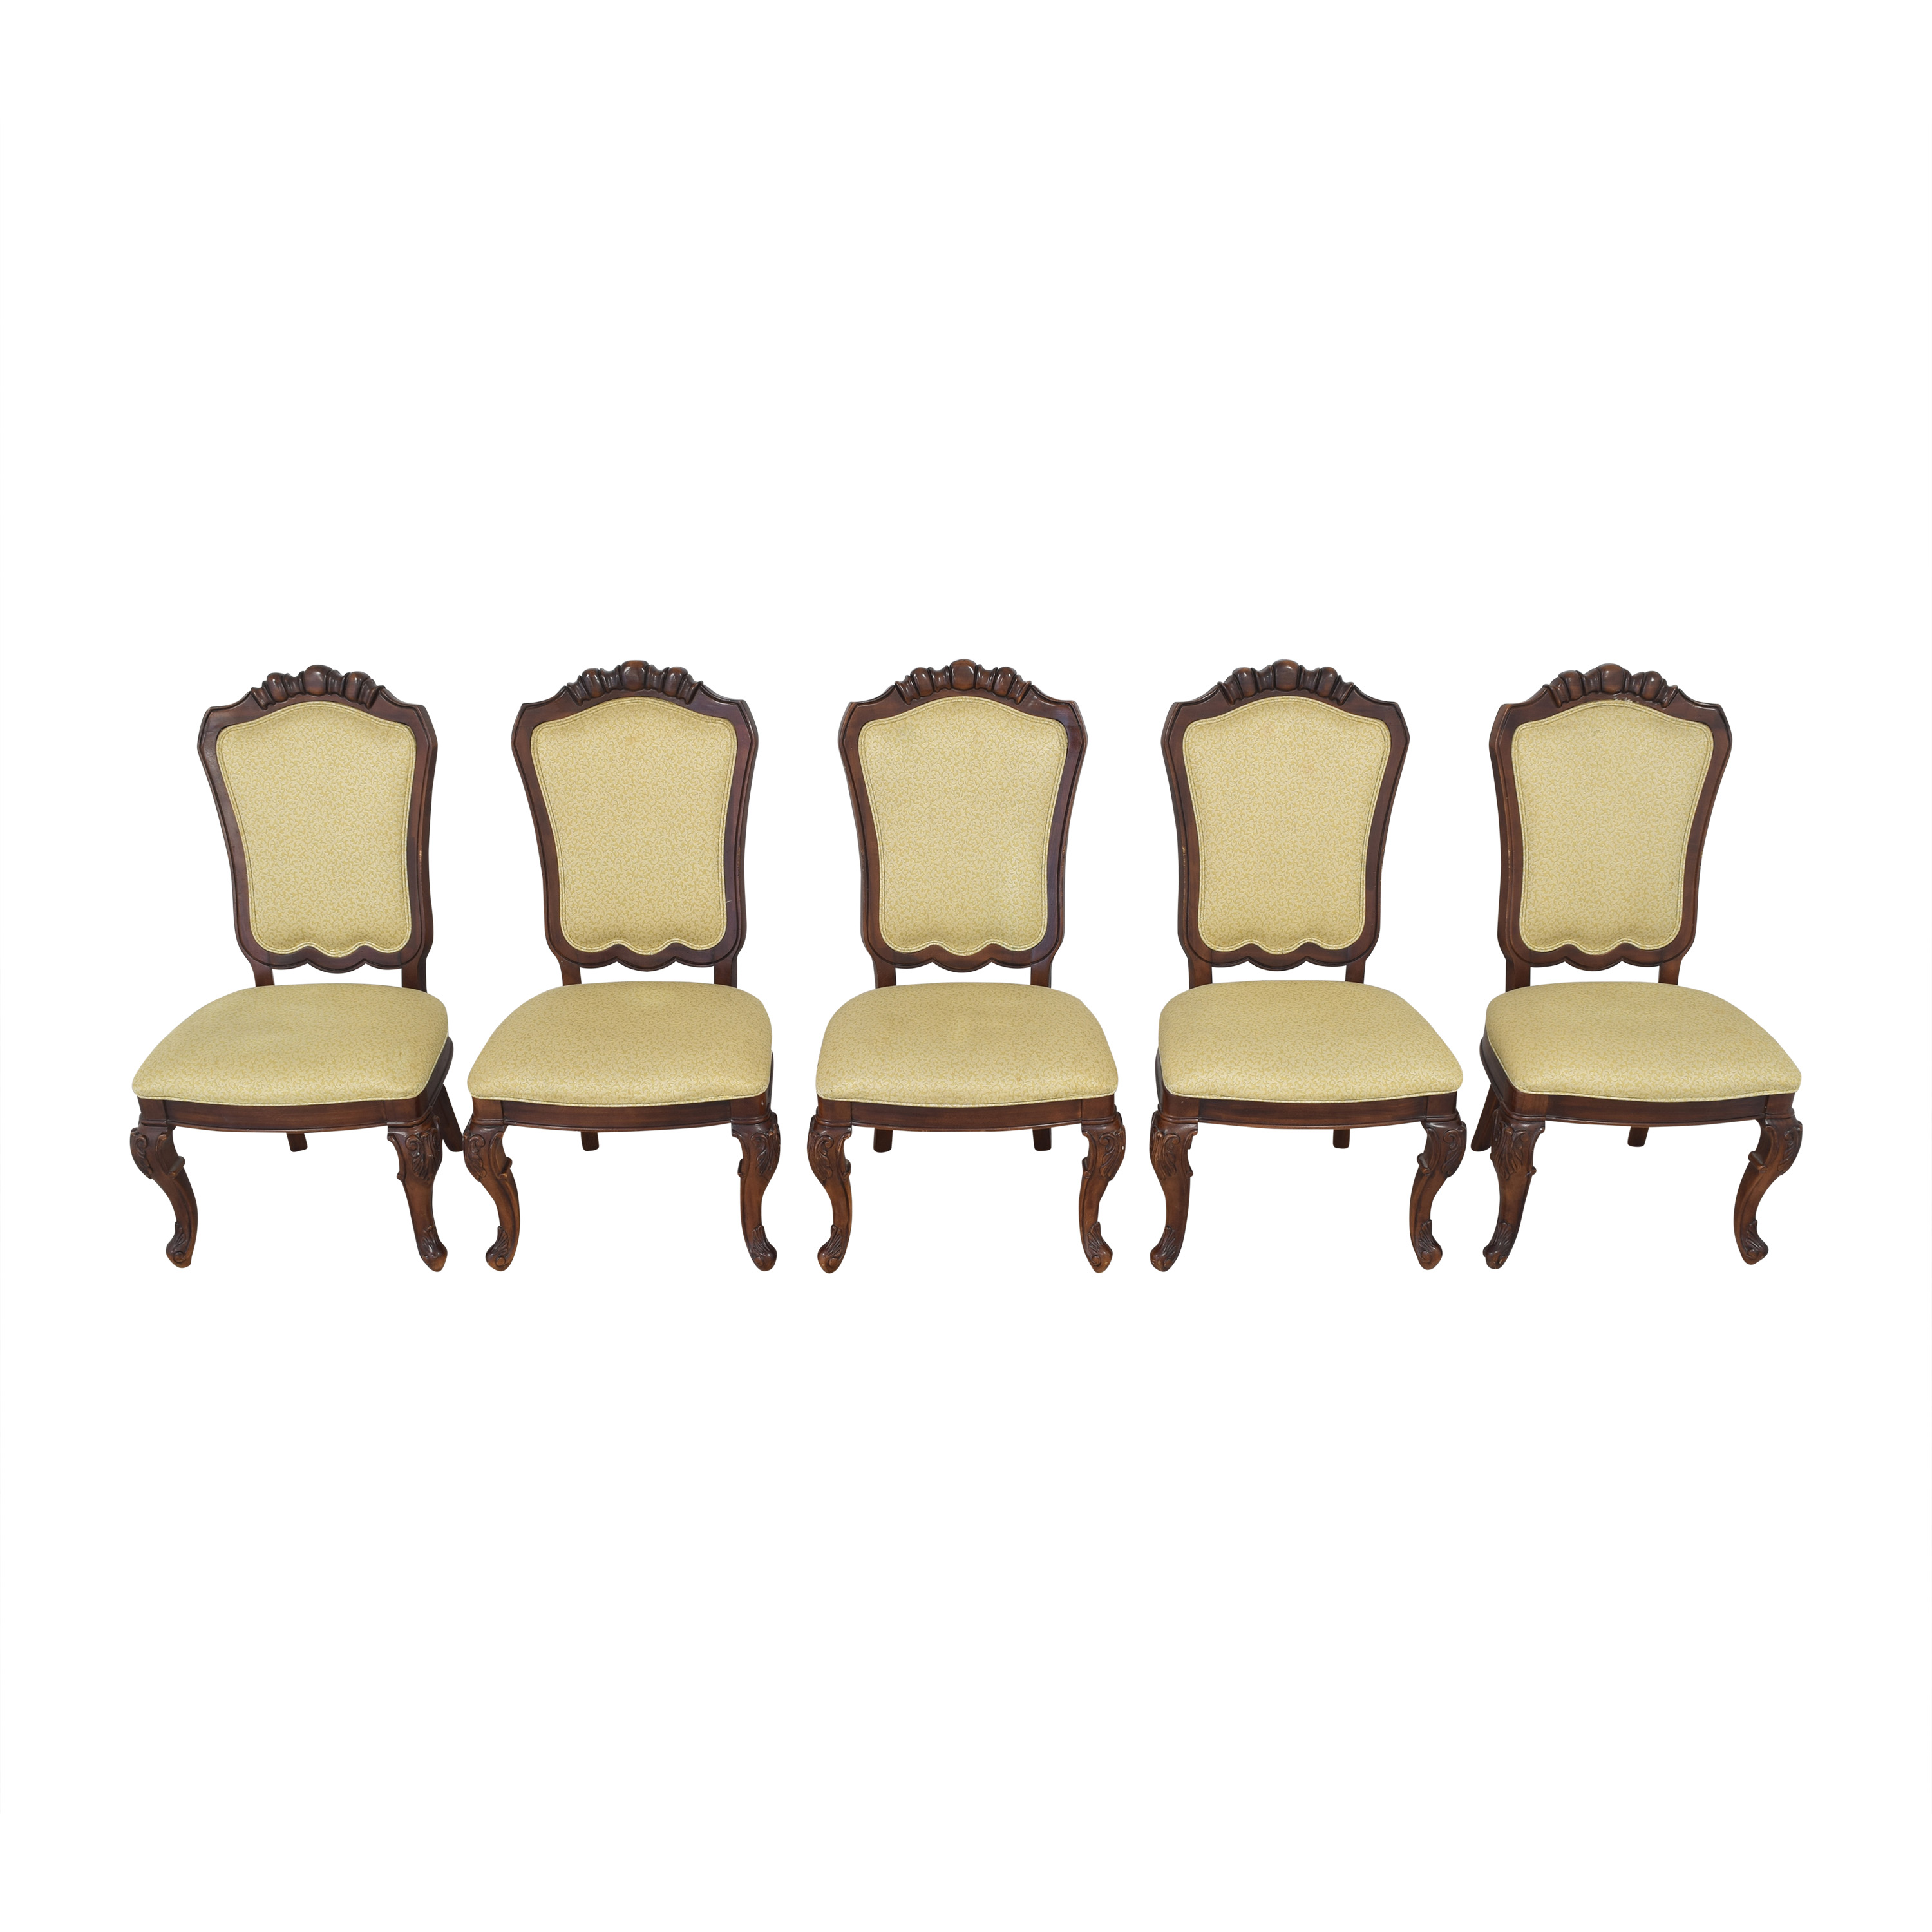 Thomasville Thomasville Upholstered Dining Side Chairs price